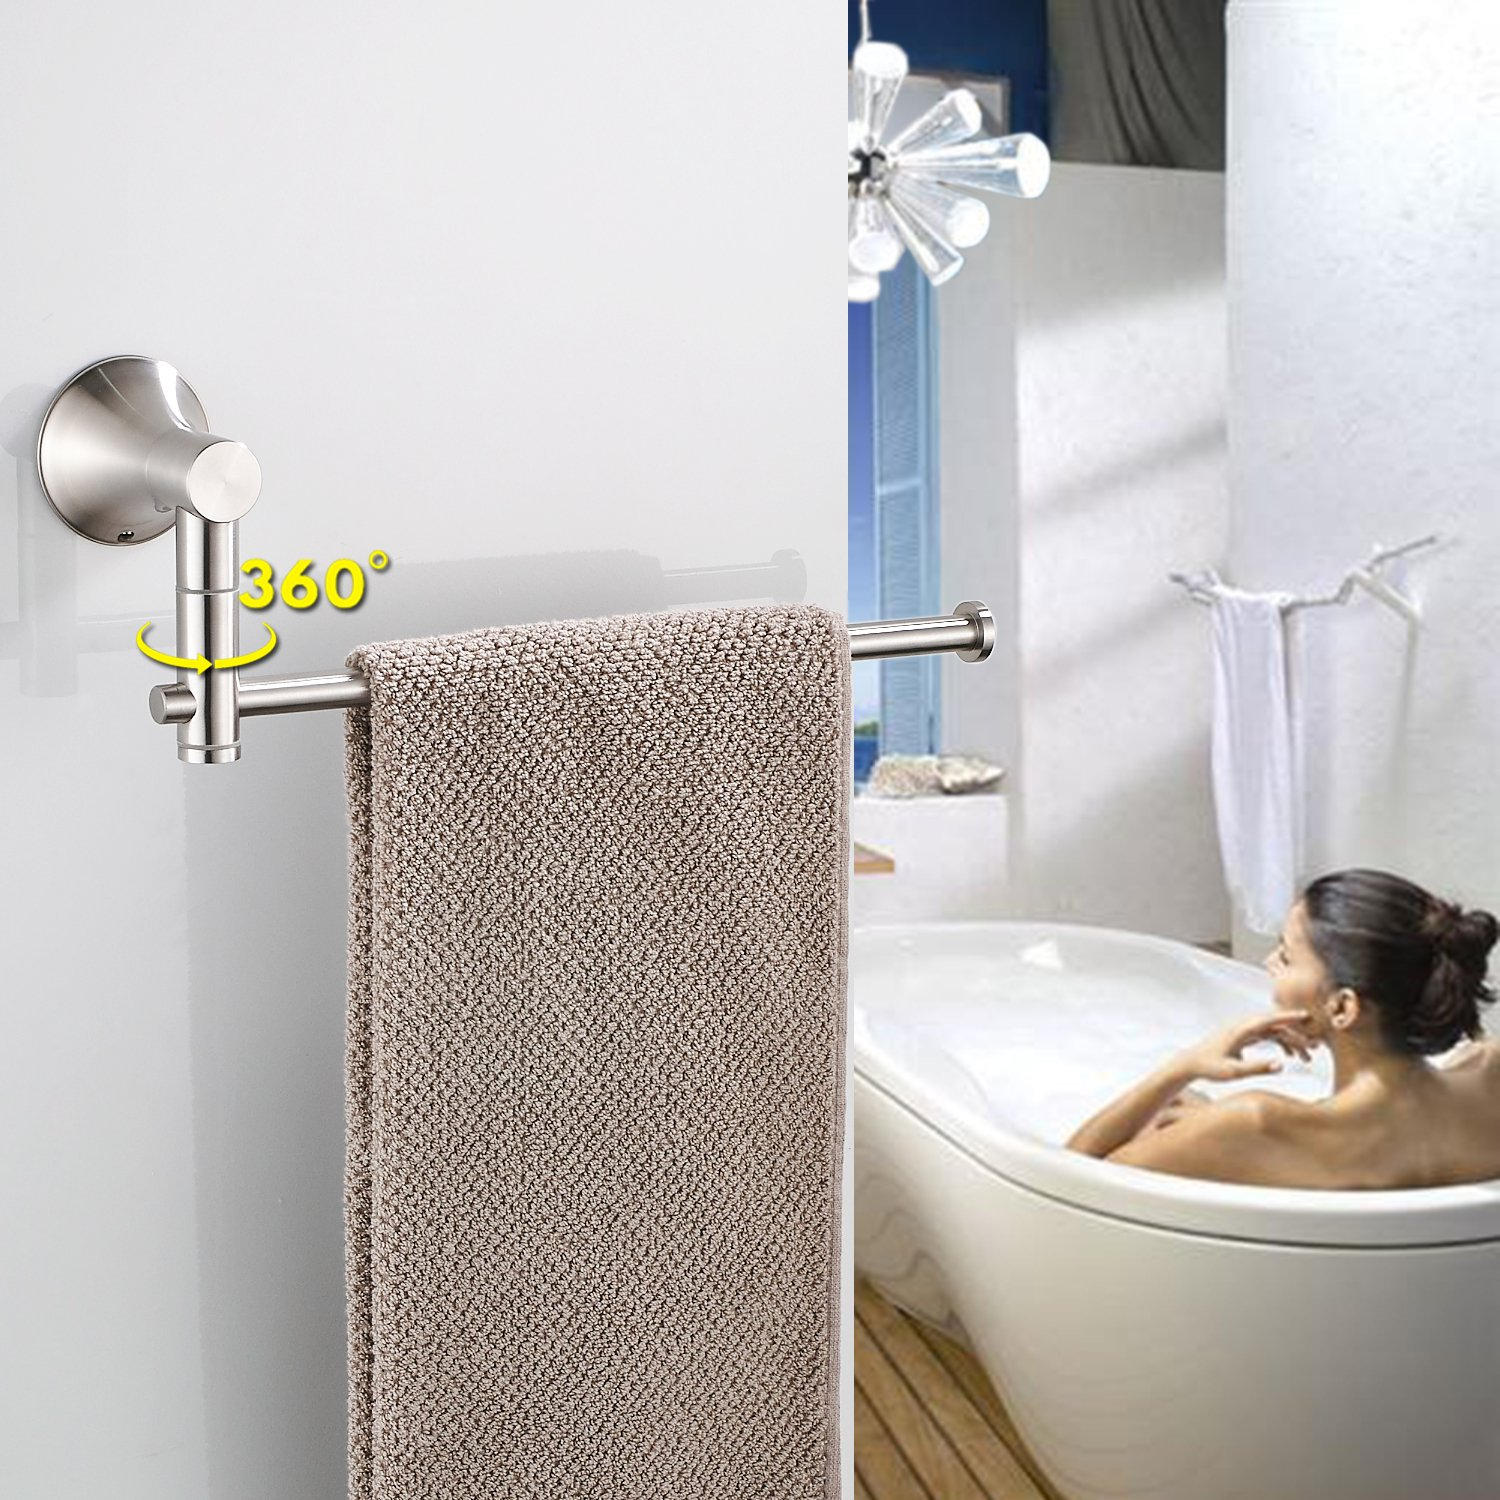 KOOLIFT Bathroom Paper Towel Holder for Bathroom Hardware Shower Towel Rack Rail Wall Mount Modern Open Long Arm Design Stainless Steel Polished Brushed by